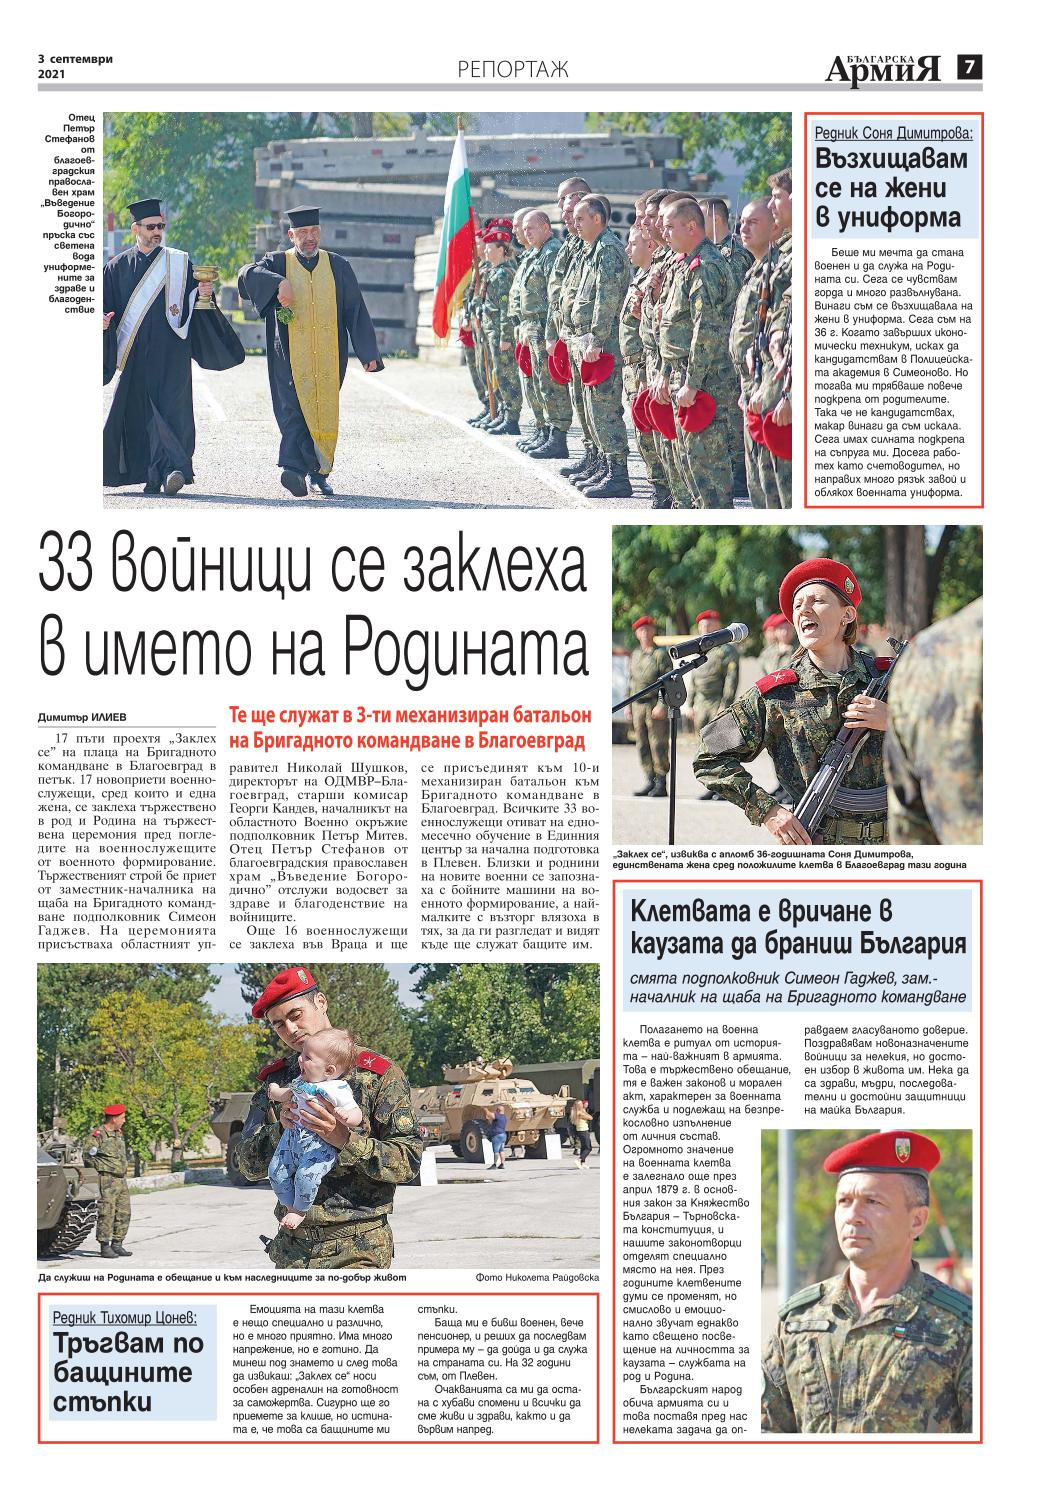 https://armymedia.bg/wp-content/uploads/2021/09/07.page1_.jpg